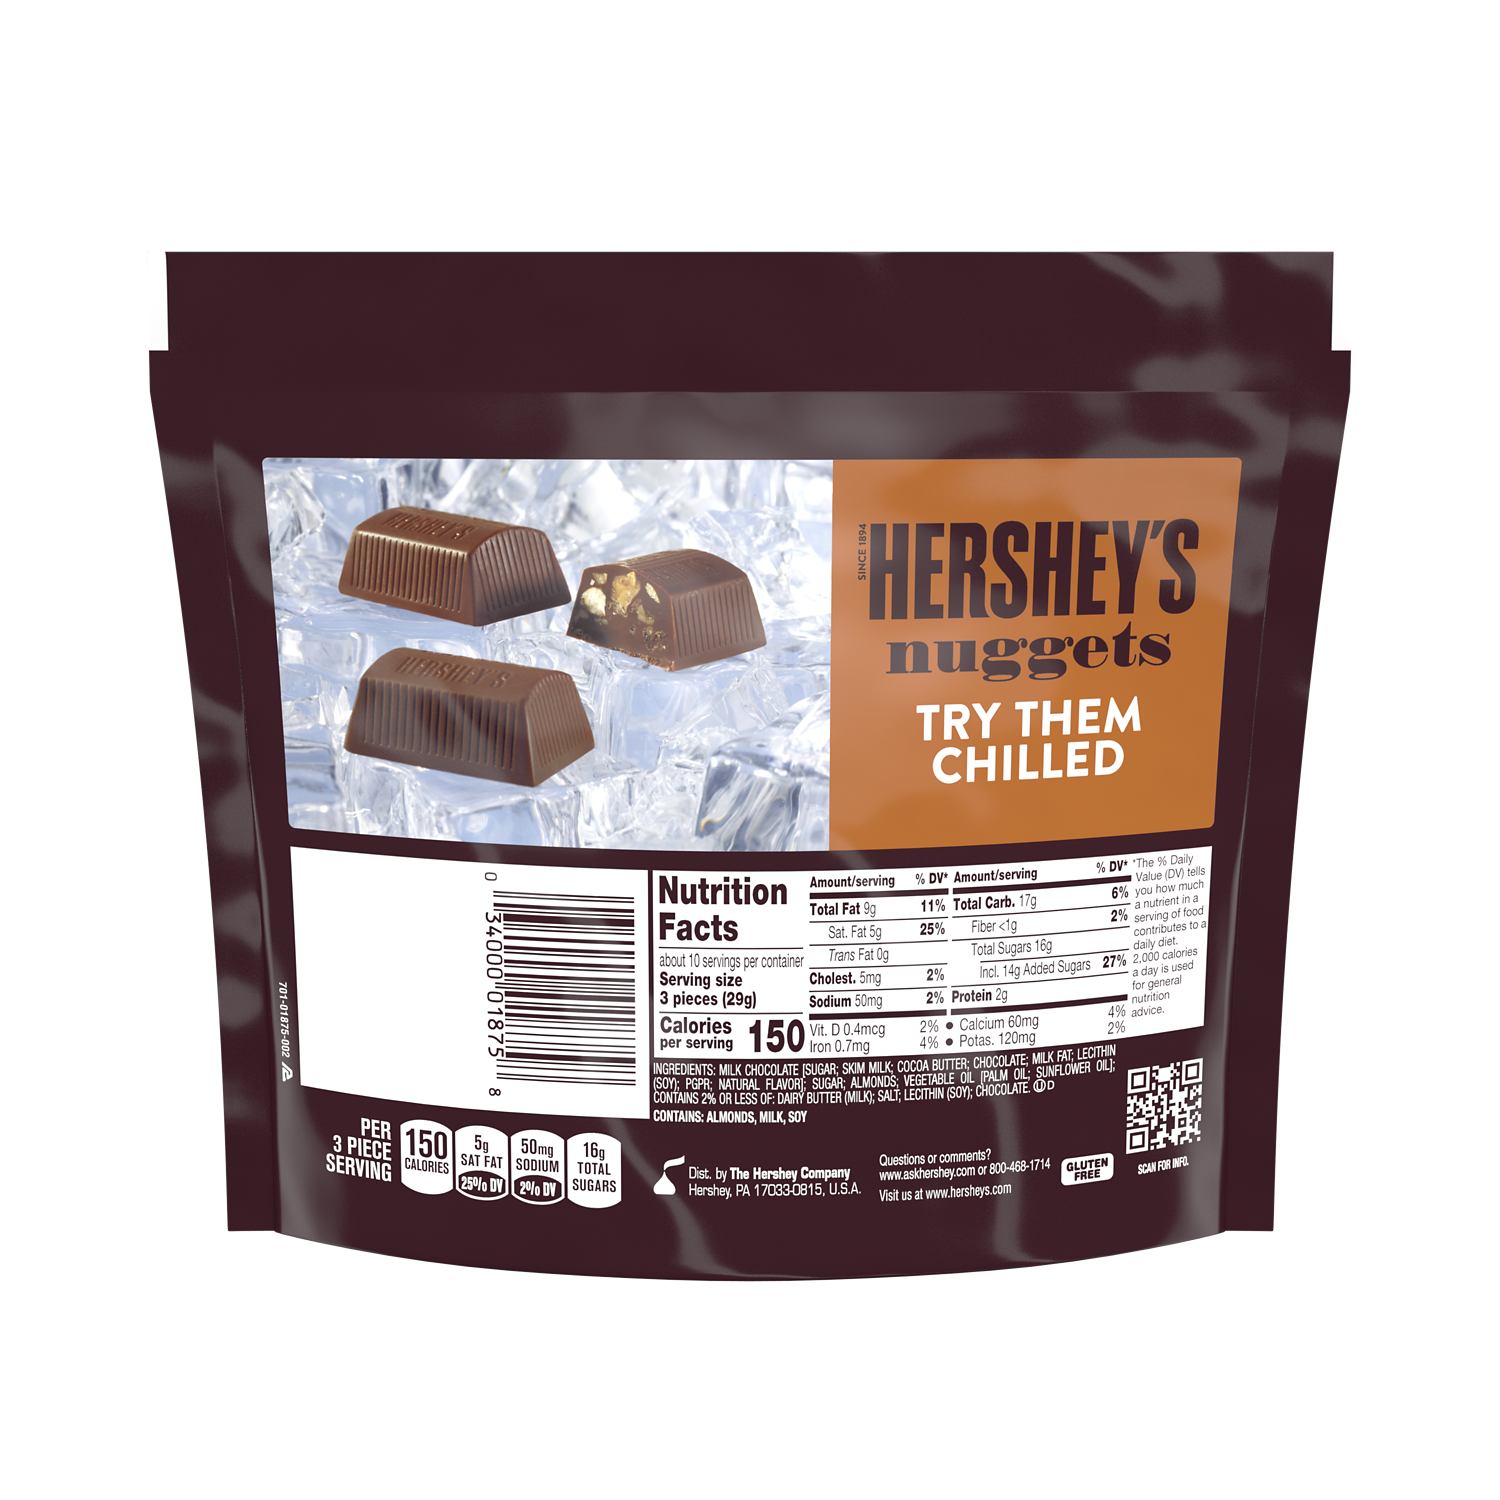 HERSHEY'S NUGGETS Extra Creamy Milk Chocolate with Toffee & Almonds Candy, 10.2 oz pack - Back of Package